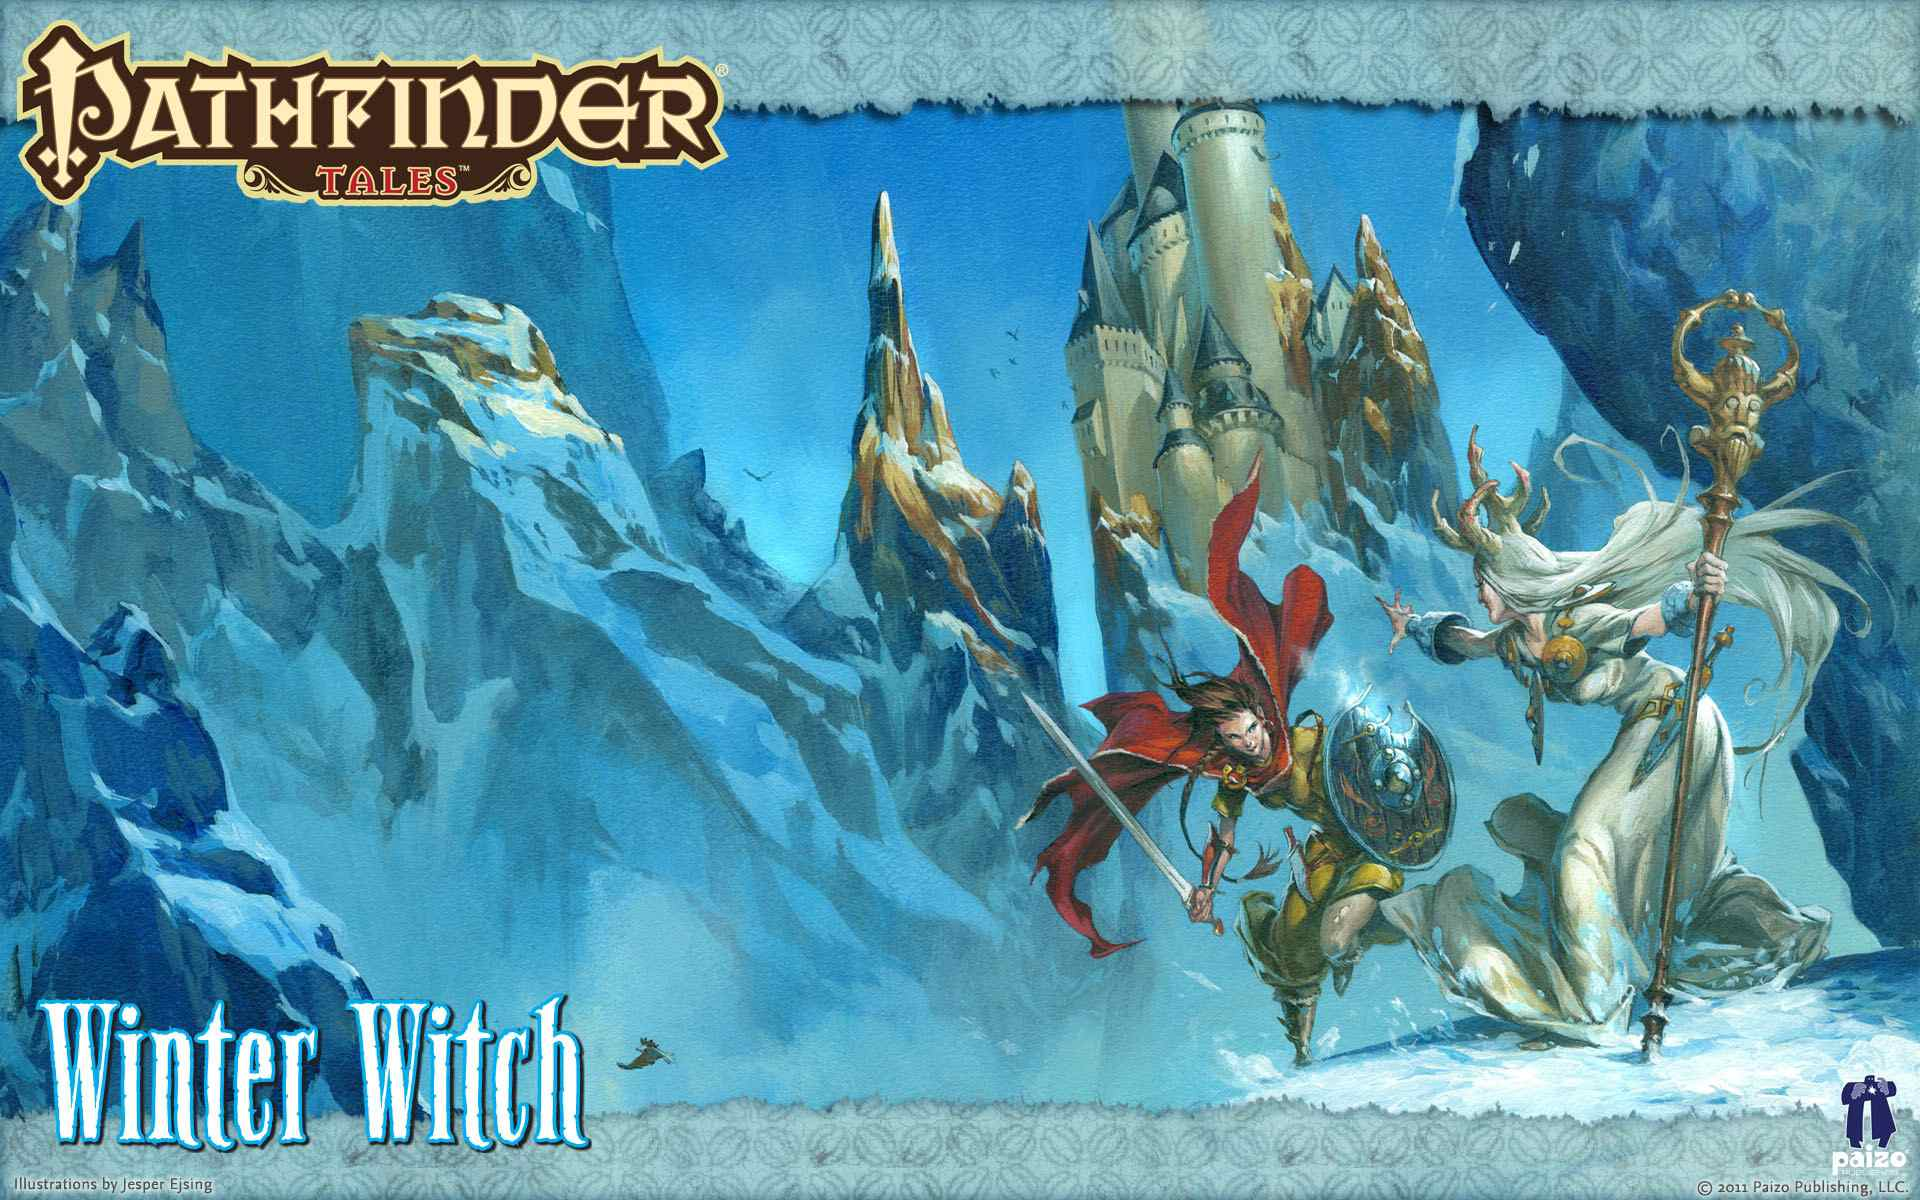 Pathfinder Tales Winter Witch wallpaper 212920 1920x1200